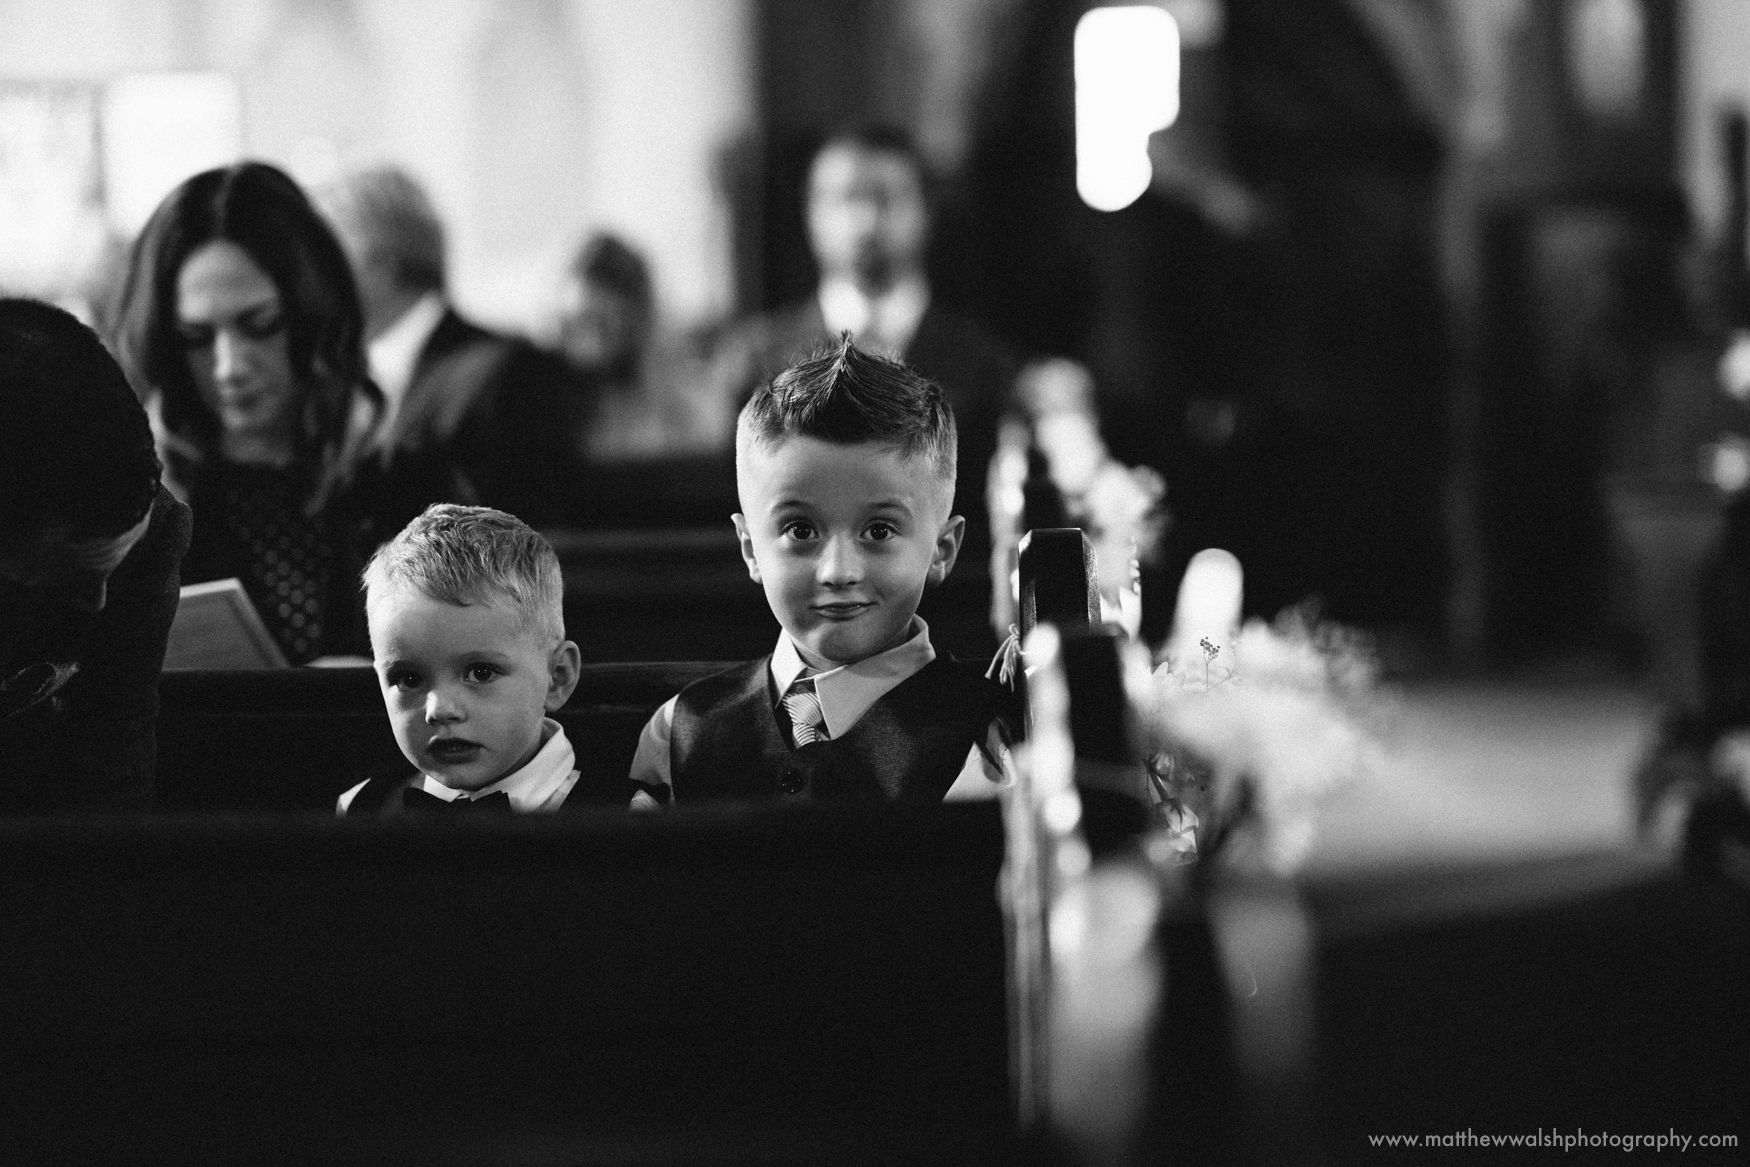 A photojournalistic image of two boys watching the bride and groom marry